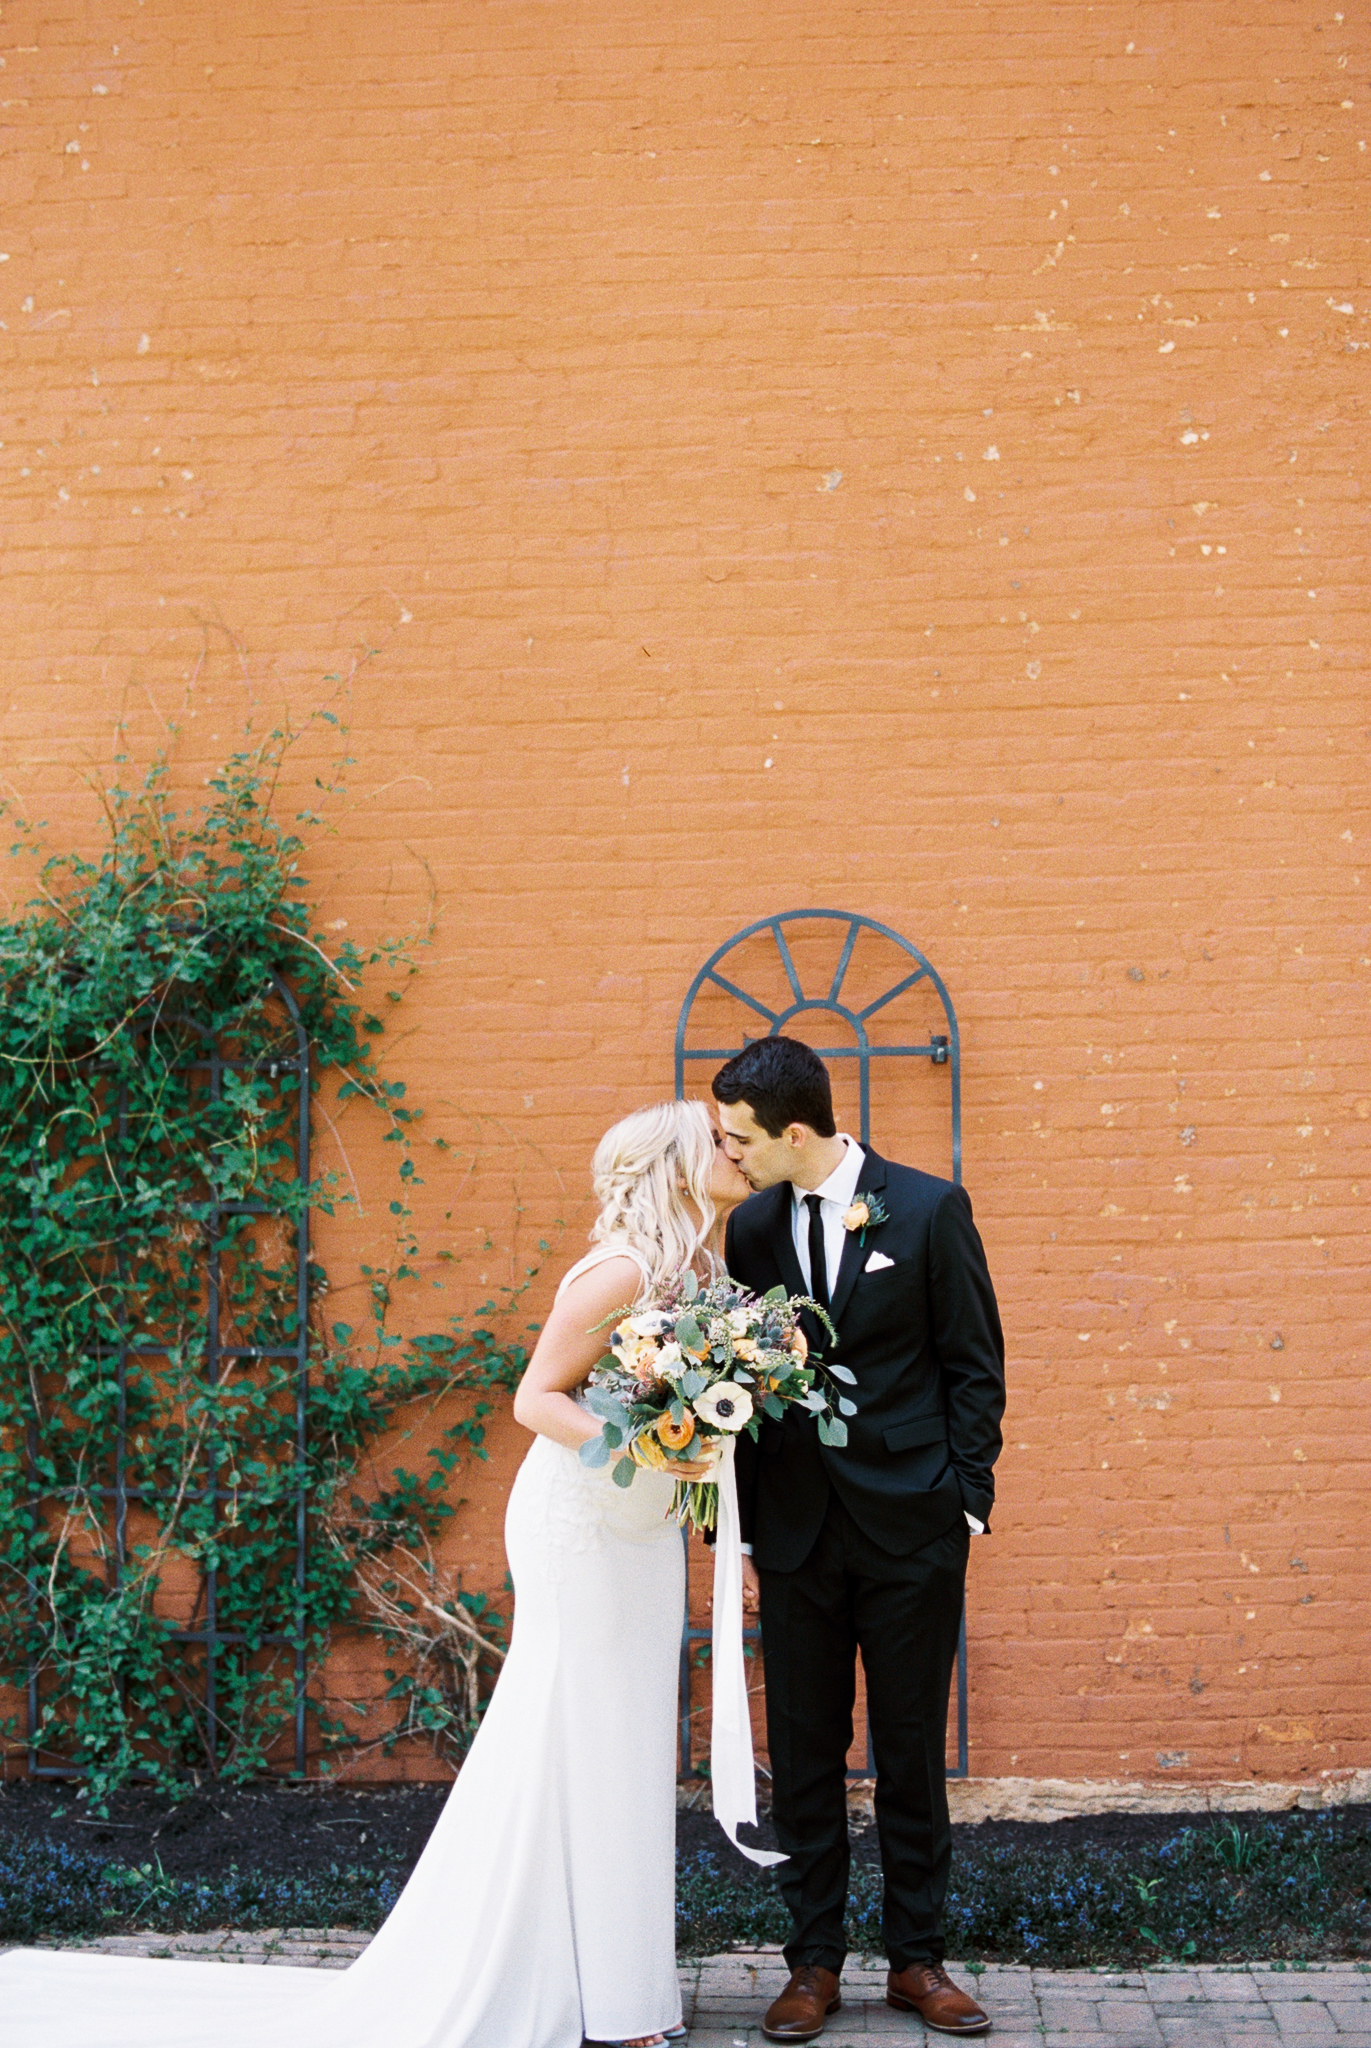 Dayton_CIncinnati_Film_Wedding_Portrait_Photographer-26.jpg